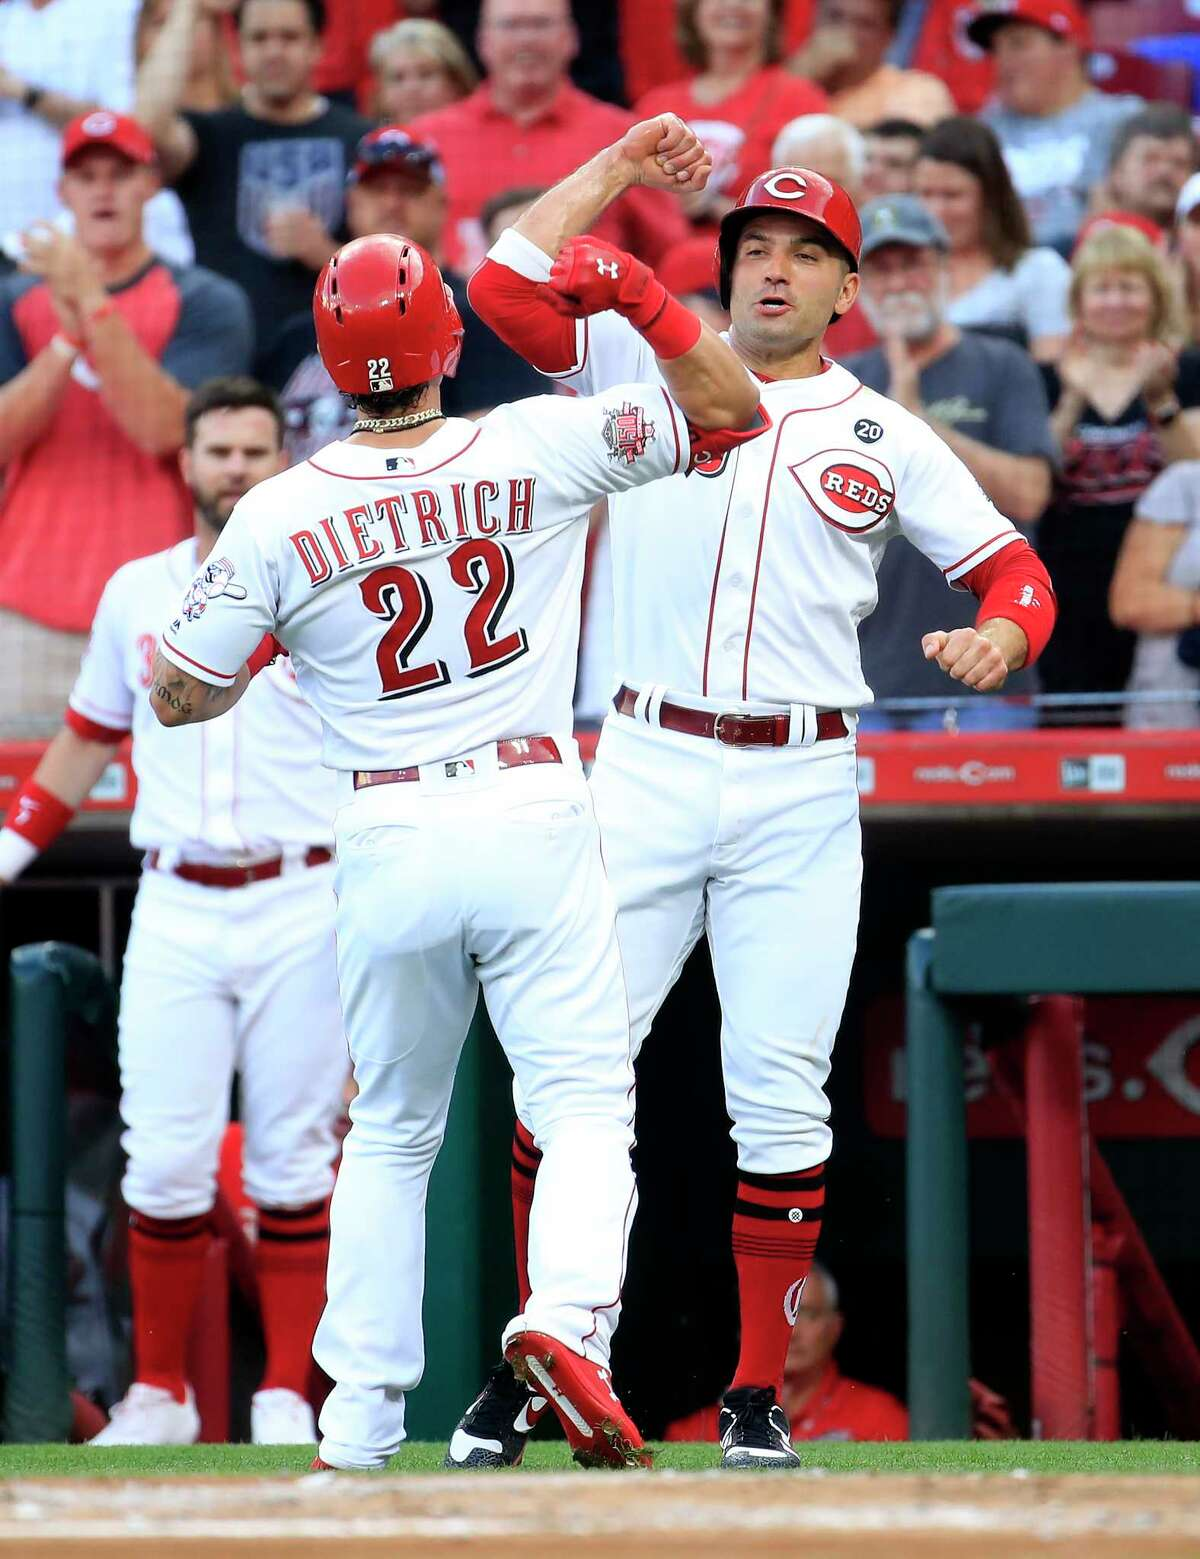 CINCINNATI, OHIO - JUNE 18: Derek Dietrich #22 of the Cincinnati Reds is congratulated by Joey Votto #19 after hitting a home run in the first inning against the Houston Astros at Great American Ball Park on June 18, 2019 in Cincinnati, Ohio. (Photo by Andy Lyons/Getty Images)